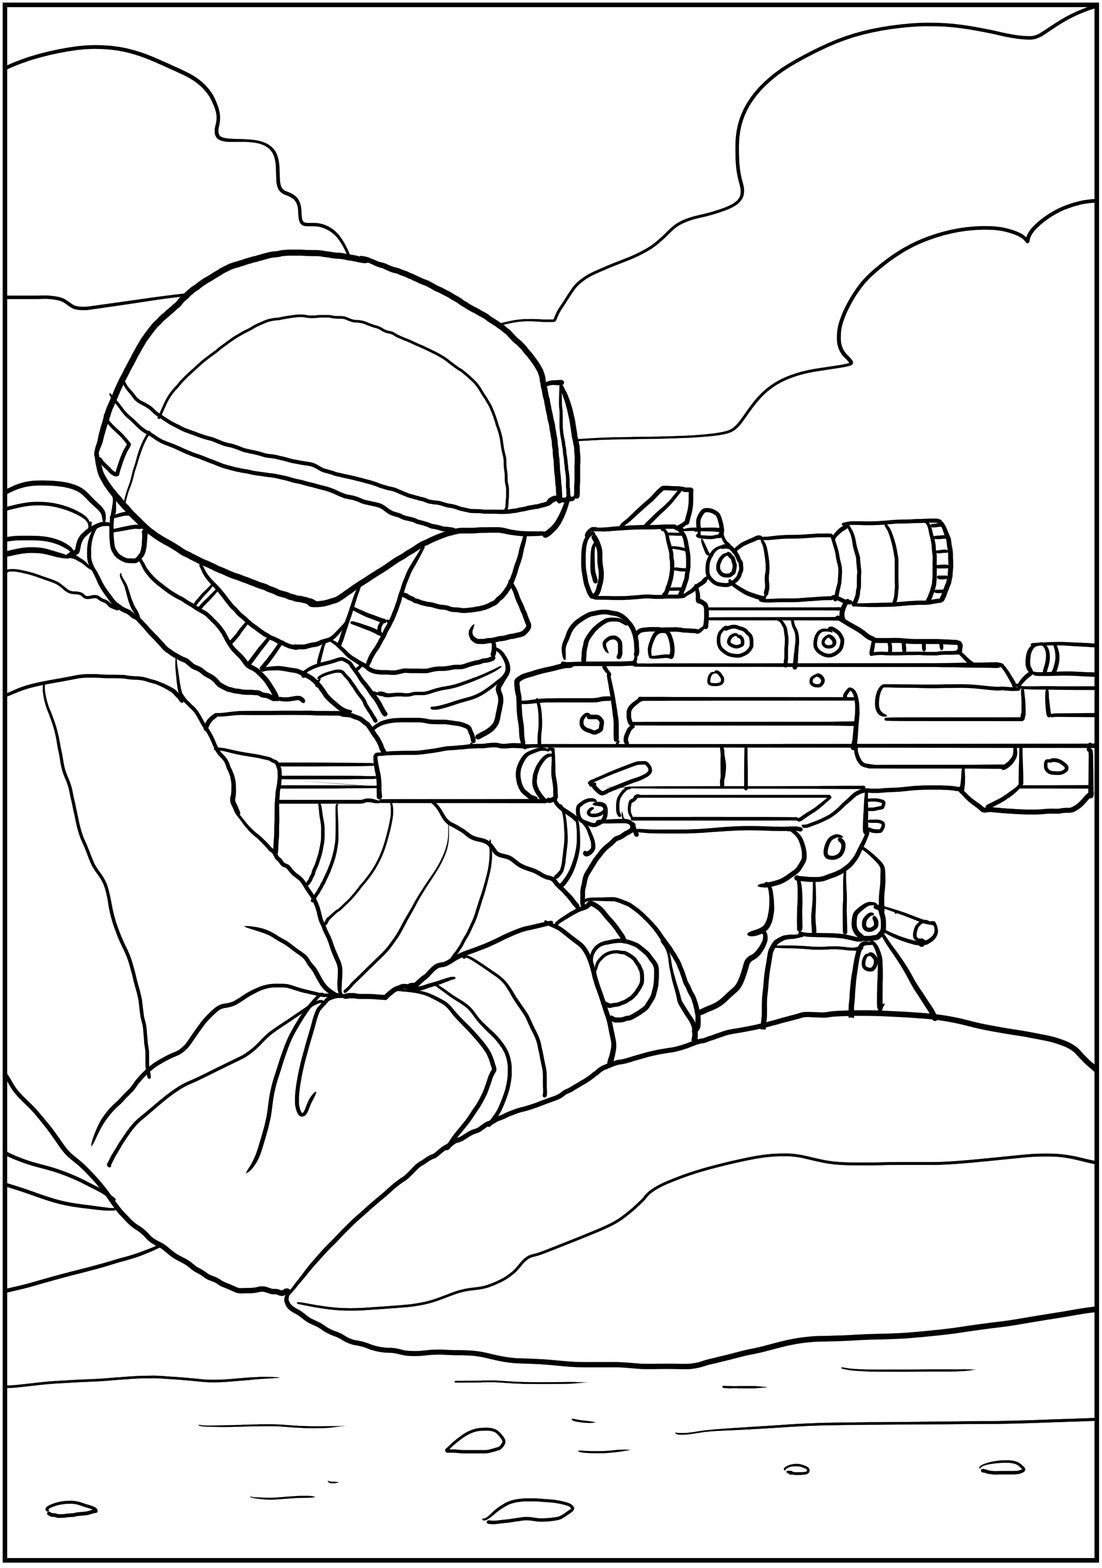 Military Action Coloring Book Patriotic Posters Military Drawings Coloring Books